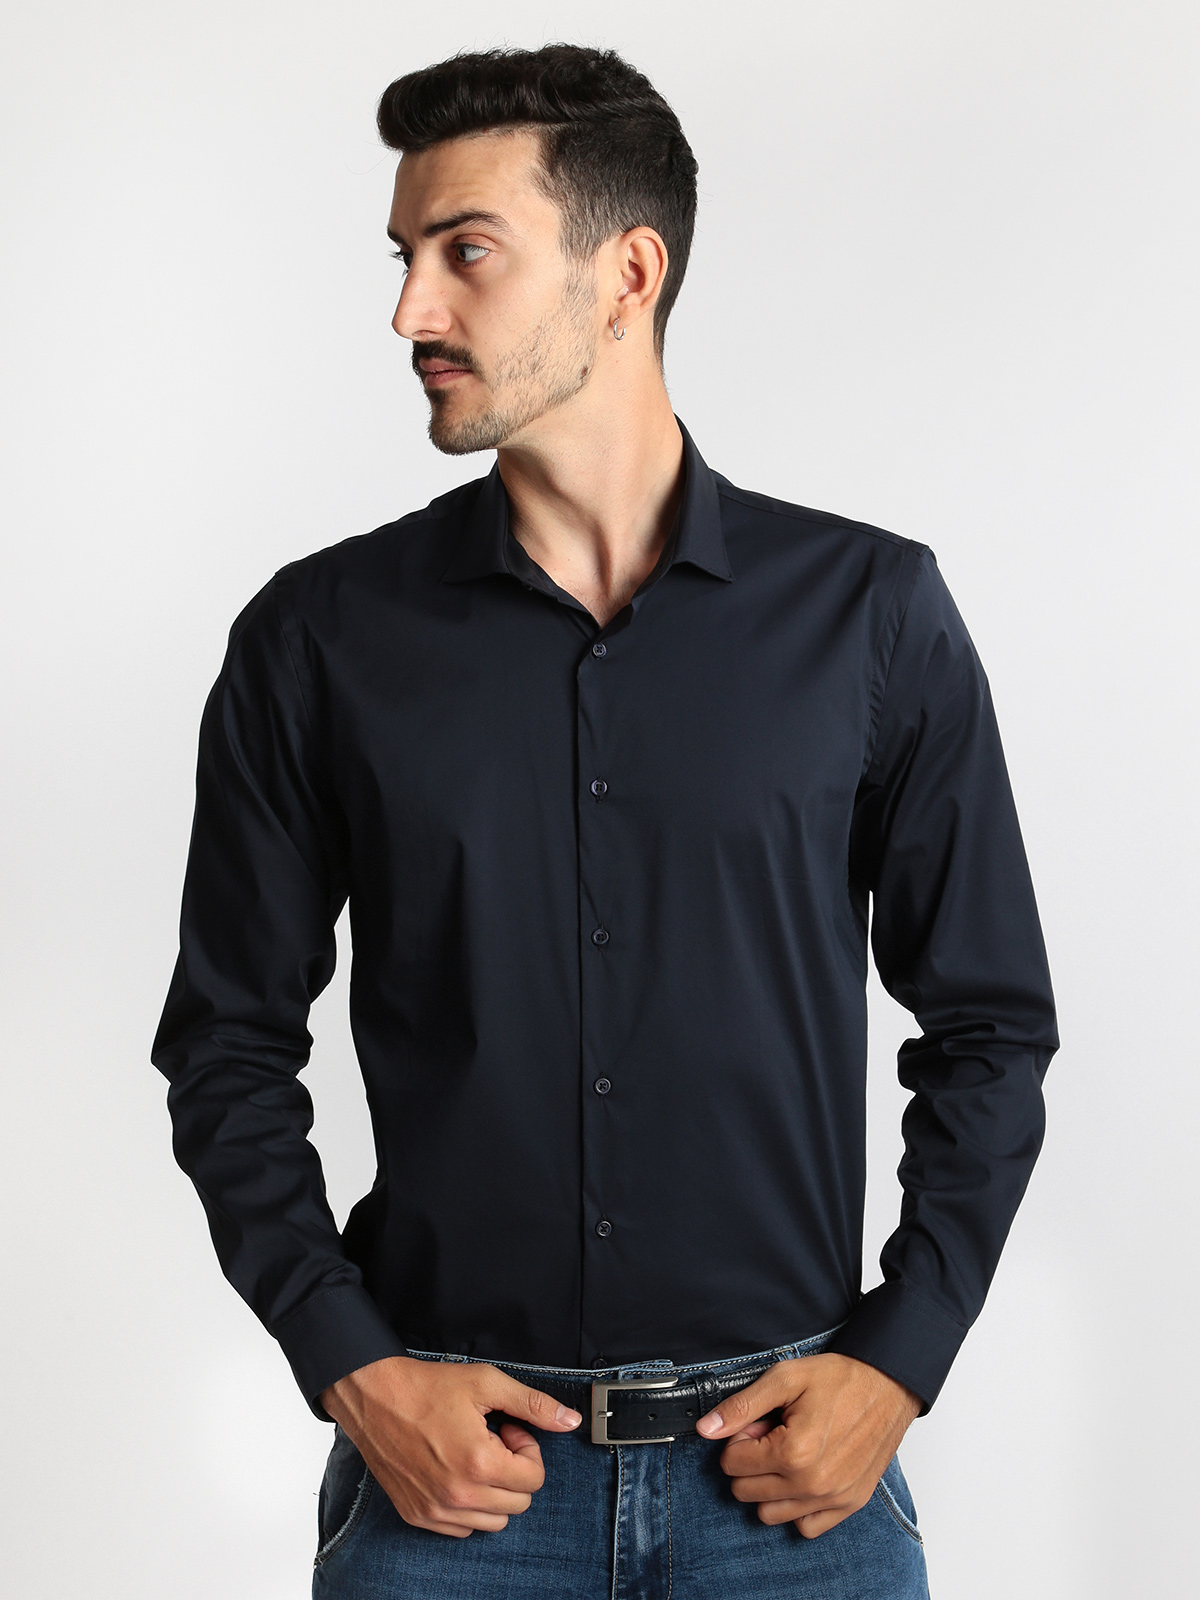 Dark Blue Shirt Long-sleeved Classic Fit